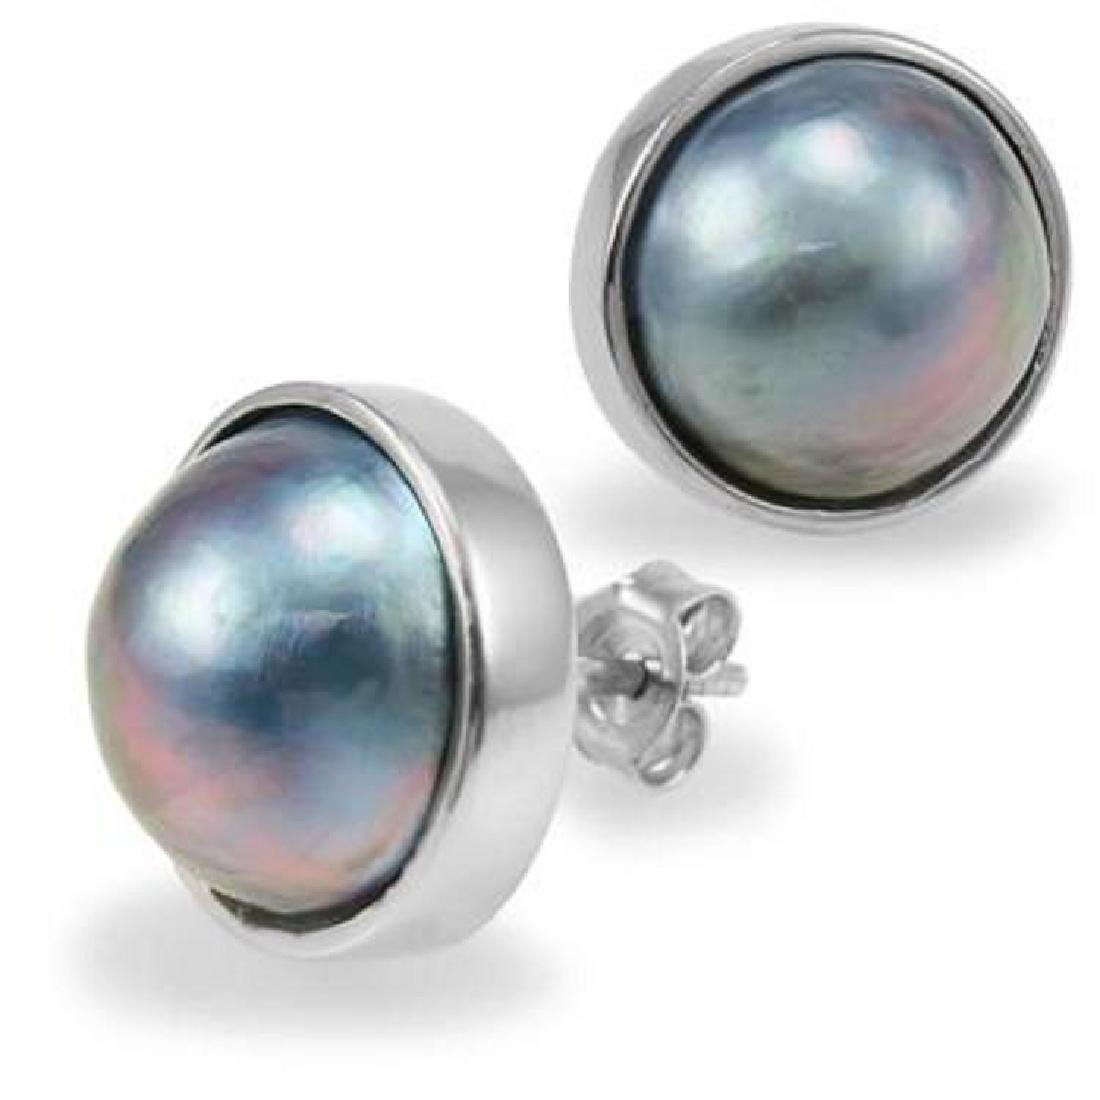 Genuine 12mm Grey Mobe Pearl Stud Earrings - 2